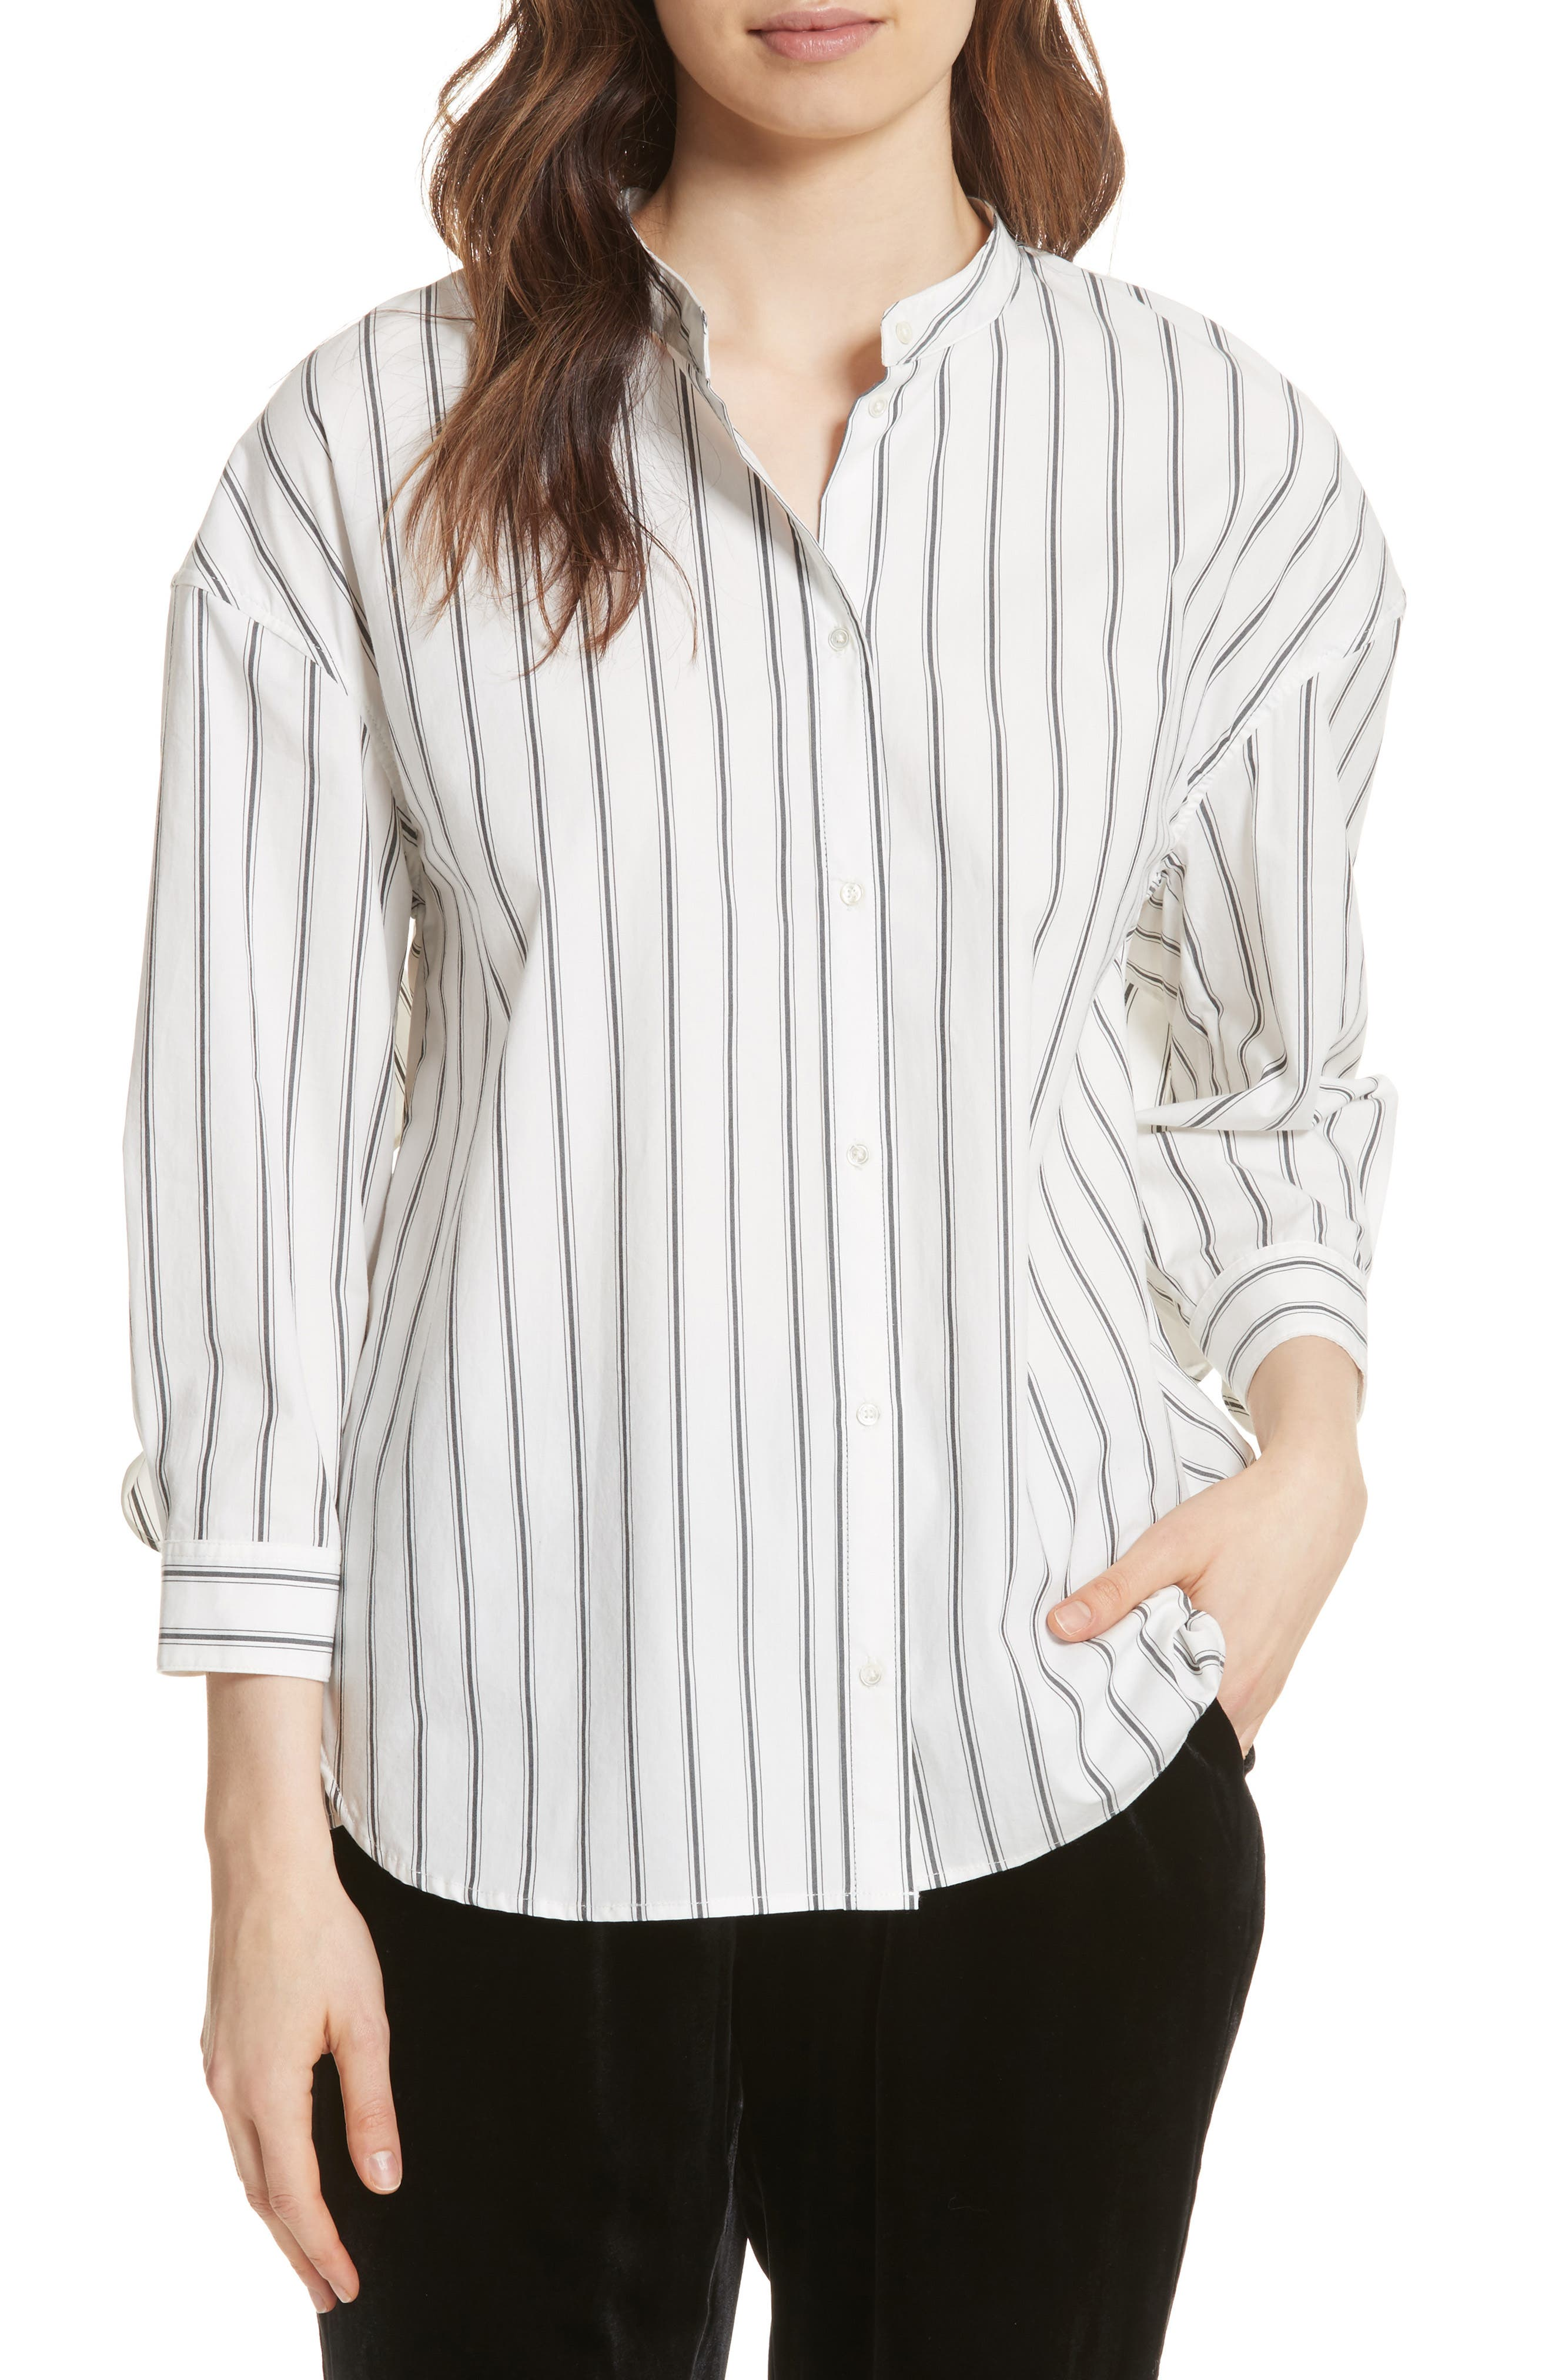 Poni Stripe Shirt,                             Main thumbnail 1, color,                             120